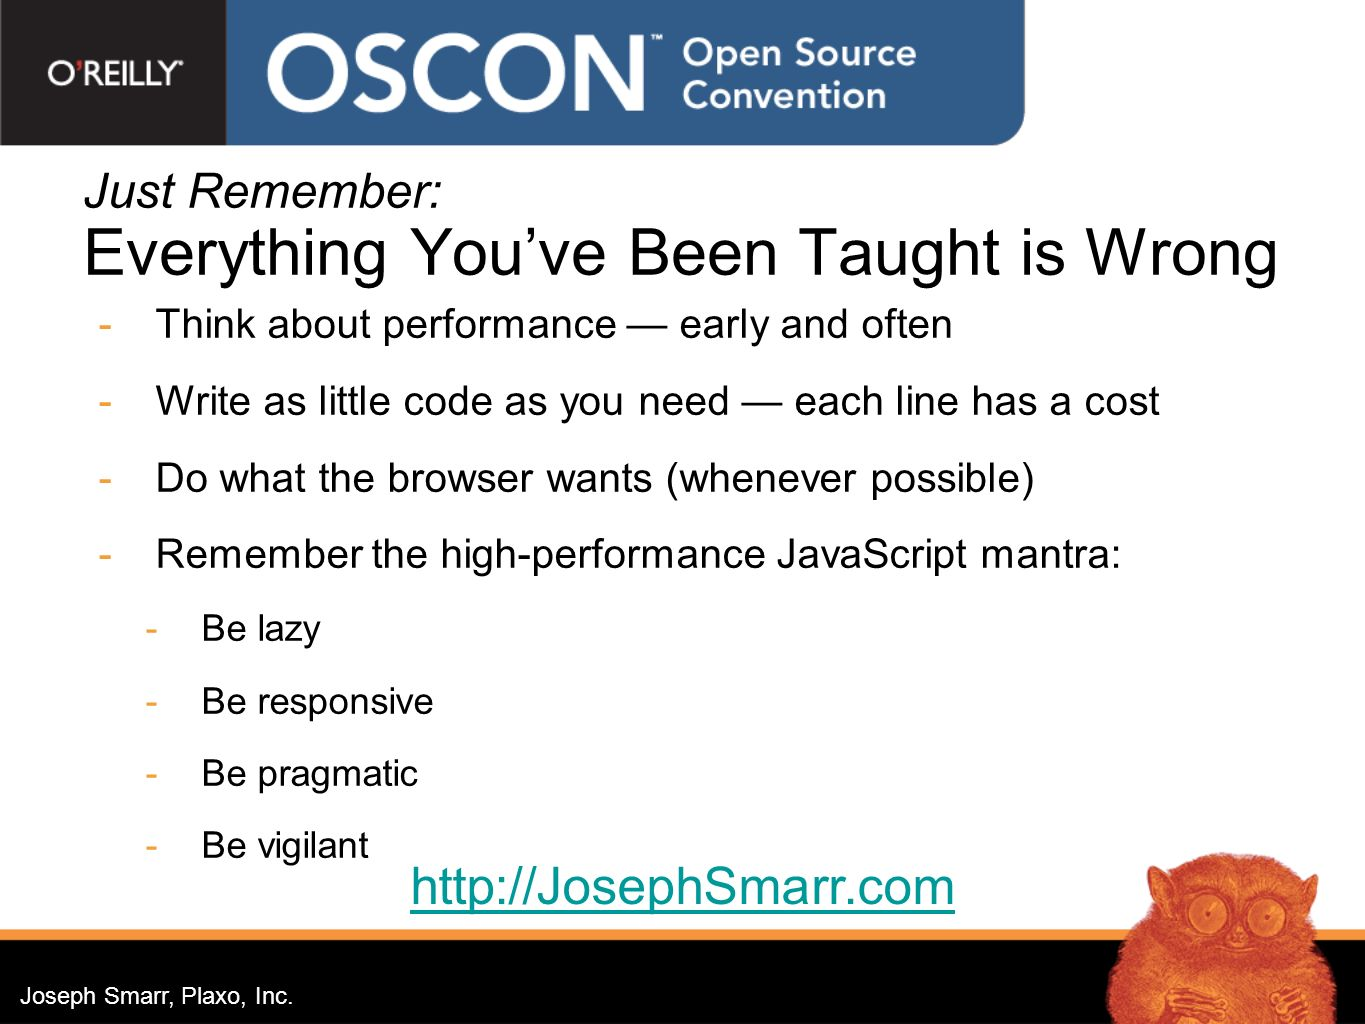 Joseph Smarr, Plaxo, Inc. Just Remember: Everything Youve Been Taught is Wrong Think about performance early and often Write as little code as you nee